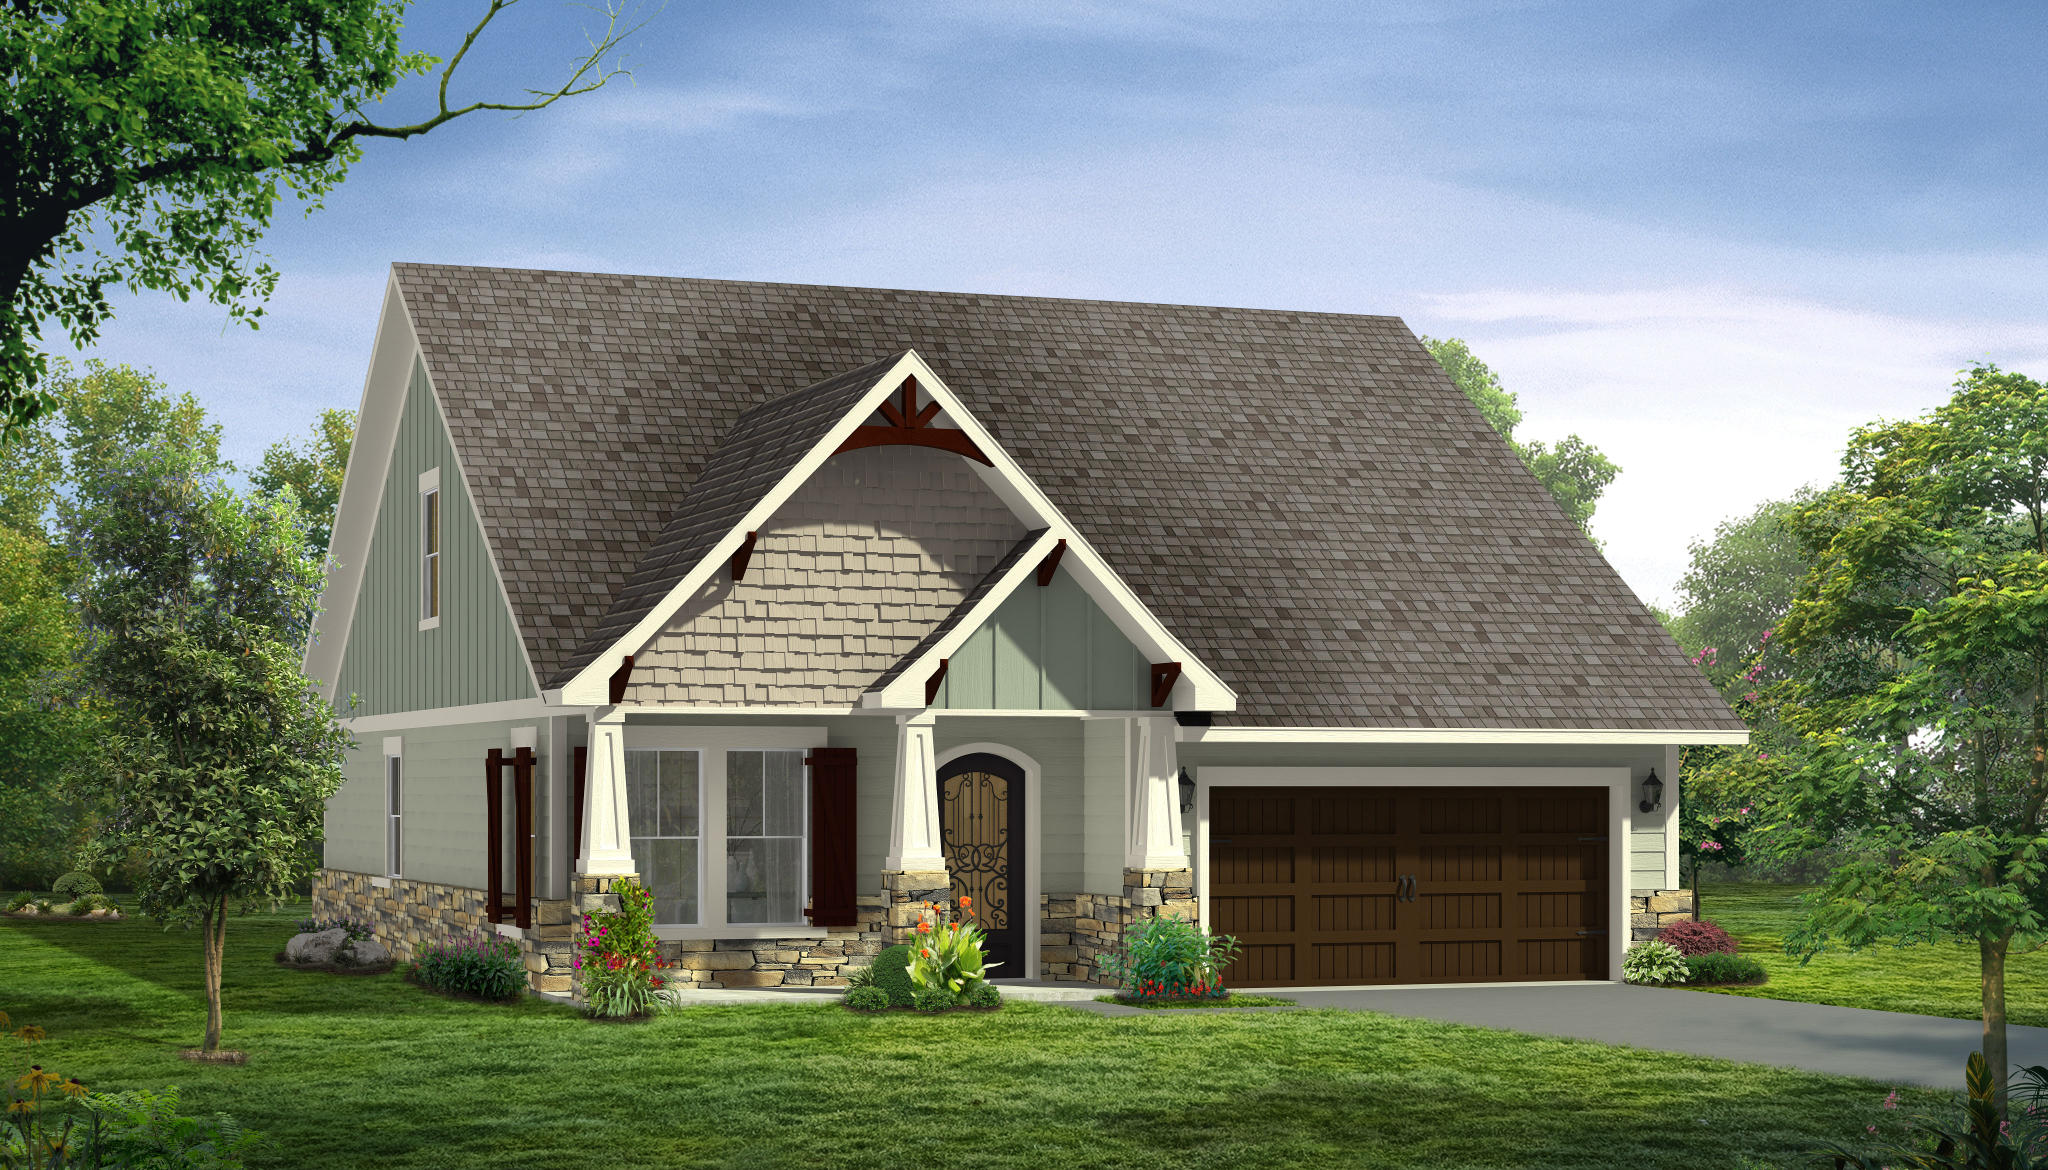 Madison Place by Elliott Homes New Homes for Sale - Ocean Springs, MS - 6  Photos | Trulia